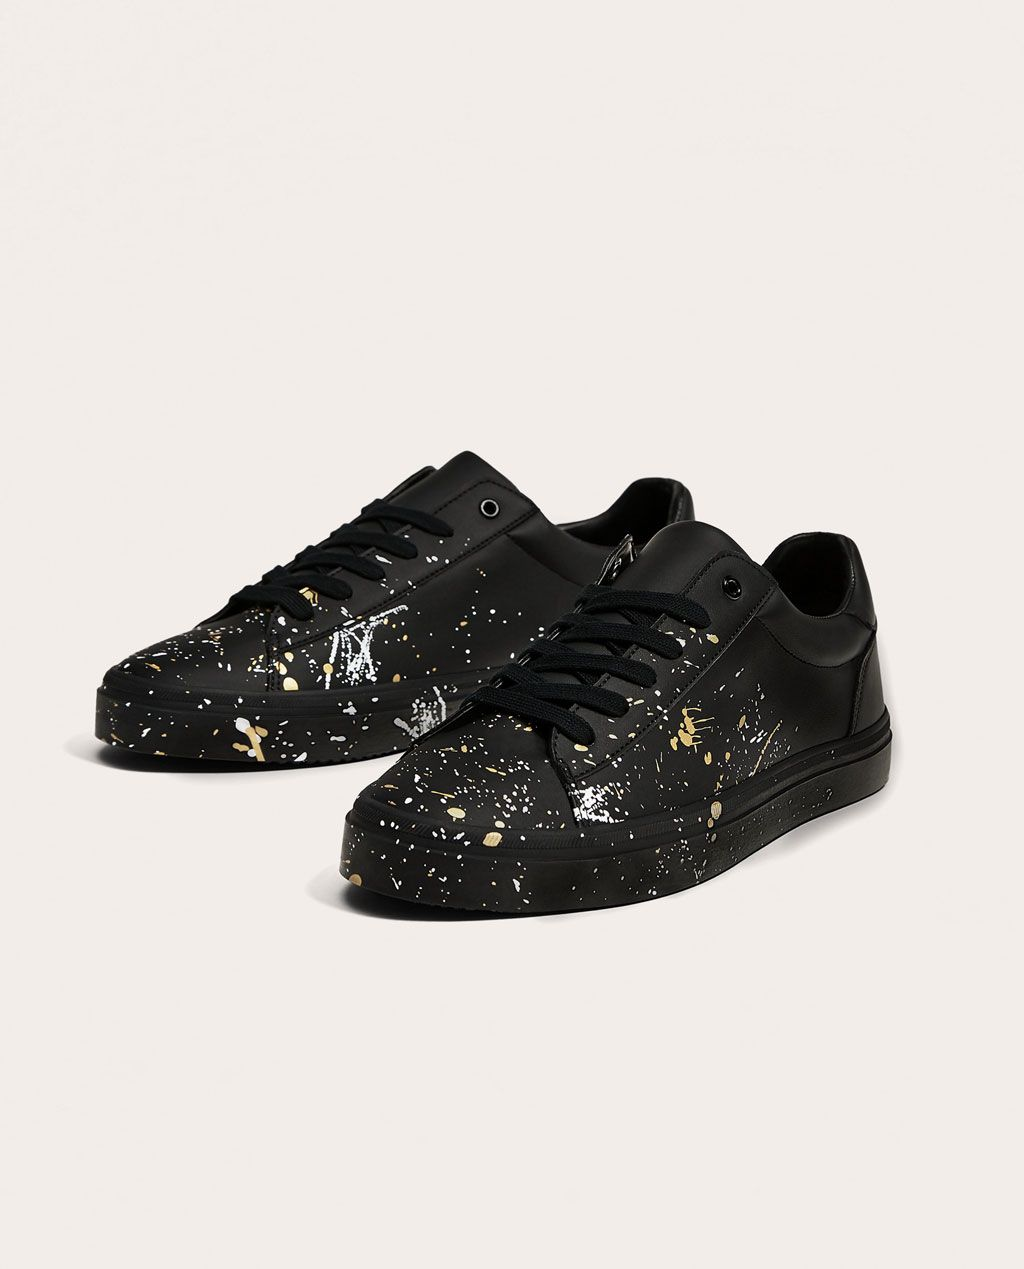 5baf5dfb0b96 BLACK PLIMSOLLS WITH PAINT SPLATTER-View all-SHOES-MAN